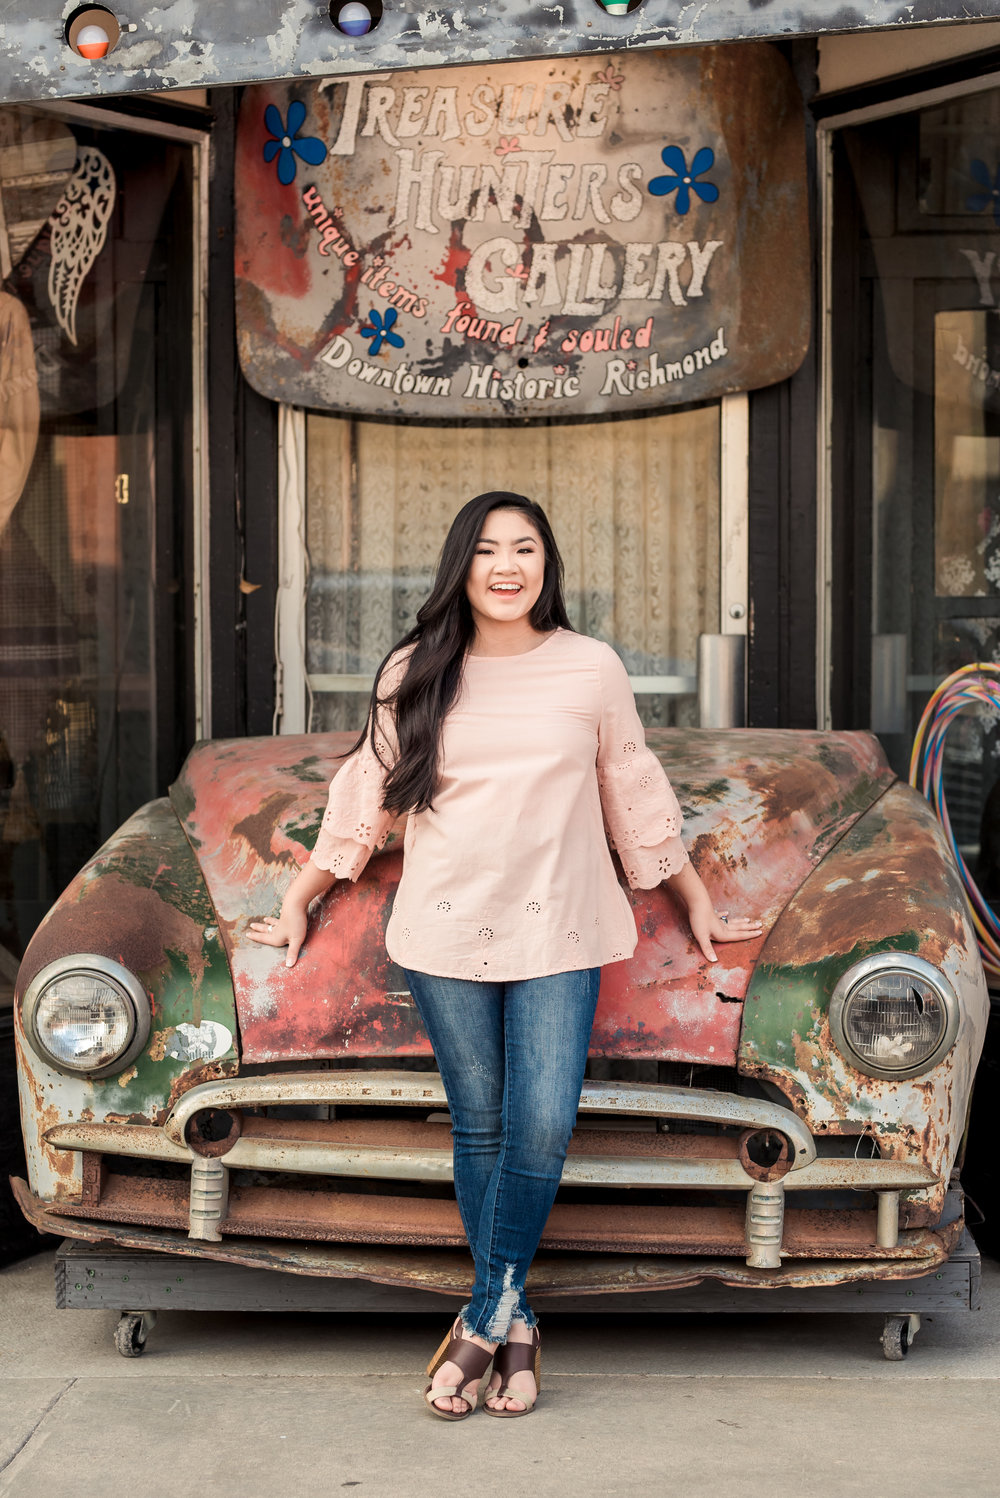 Katy, TX High School Senior Photo Session featuring a local Nursery, Old Town architecture, and boutique styling for Annie, class of 2019.